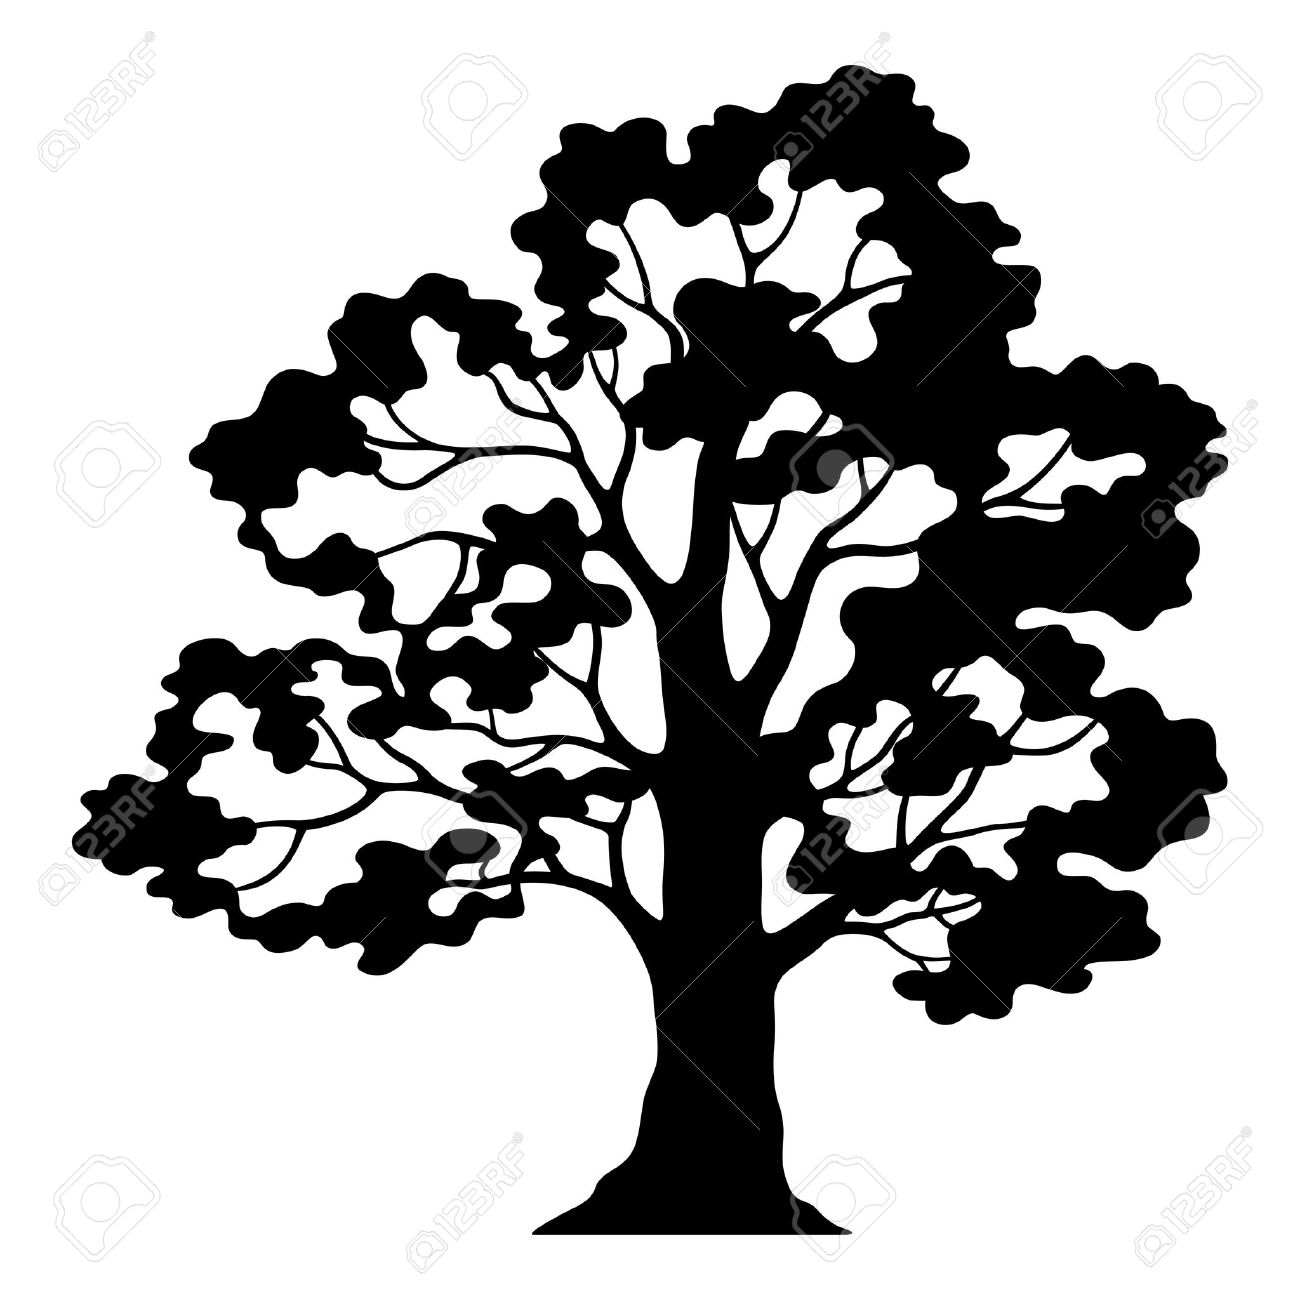 oak tree pictogram black silhouette and contours isolated on